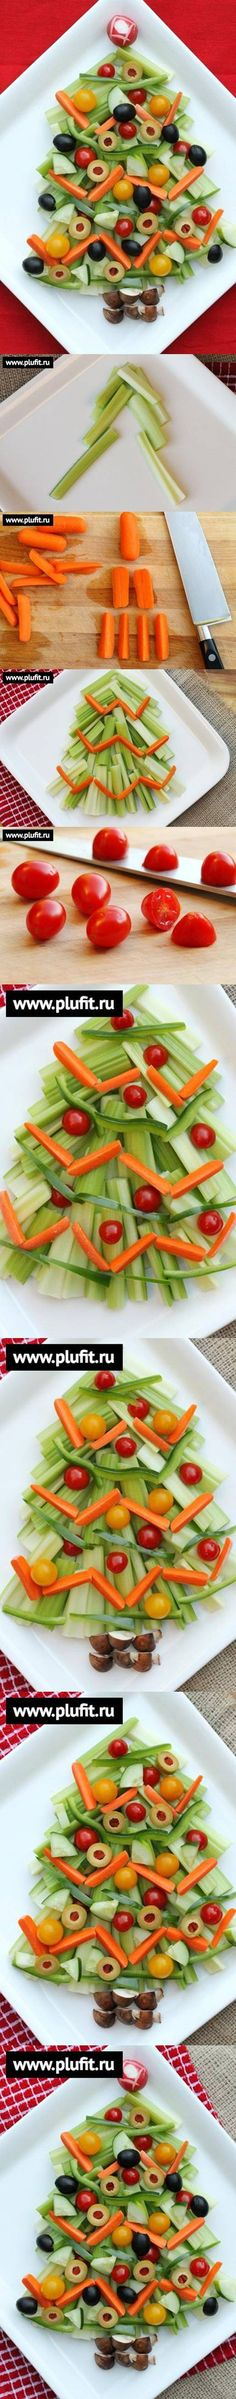 DIY Vegetable Christmas Tree Snack